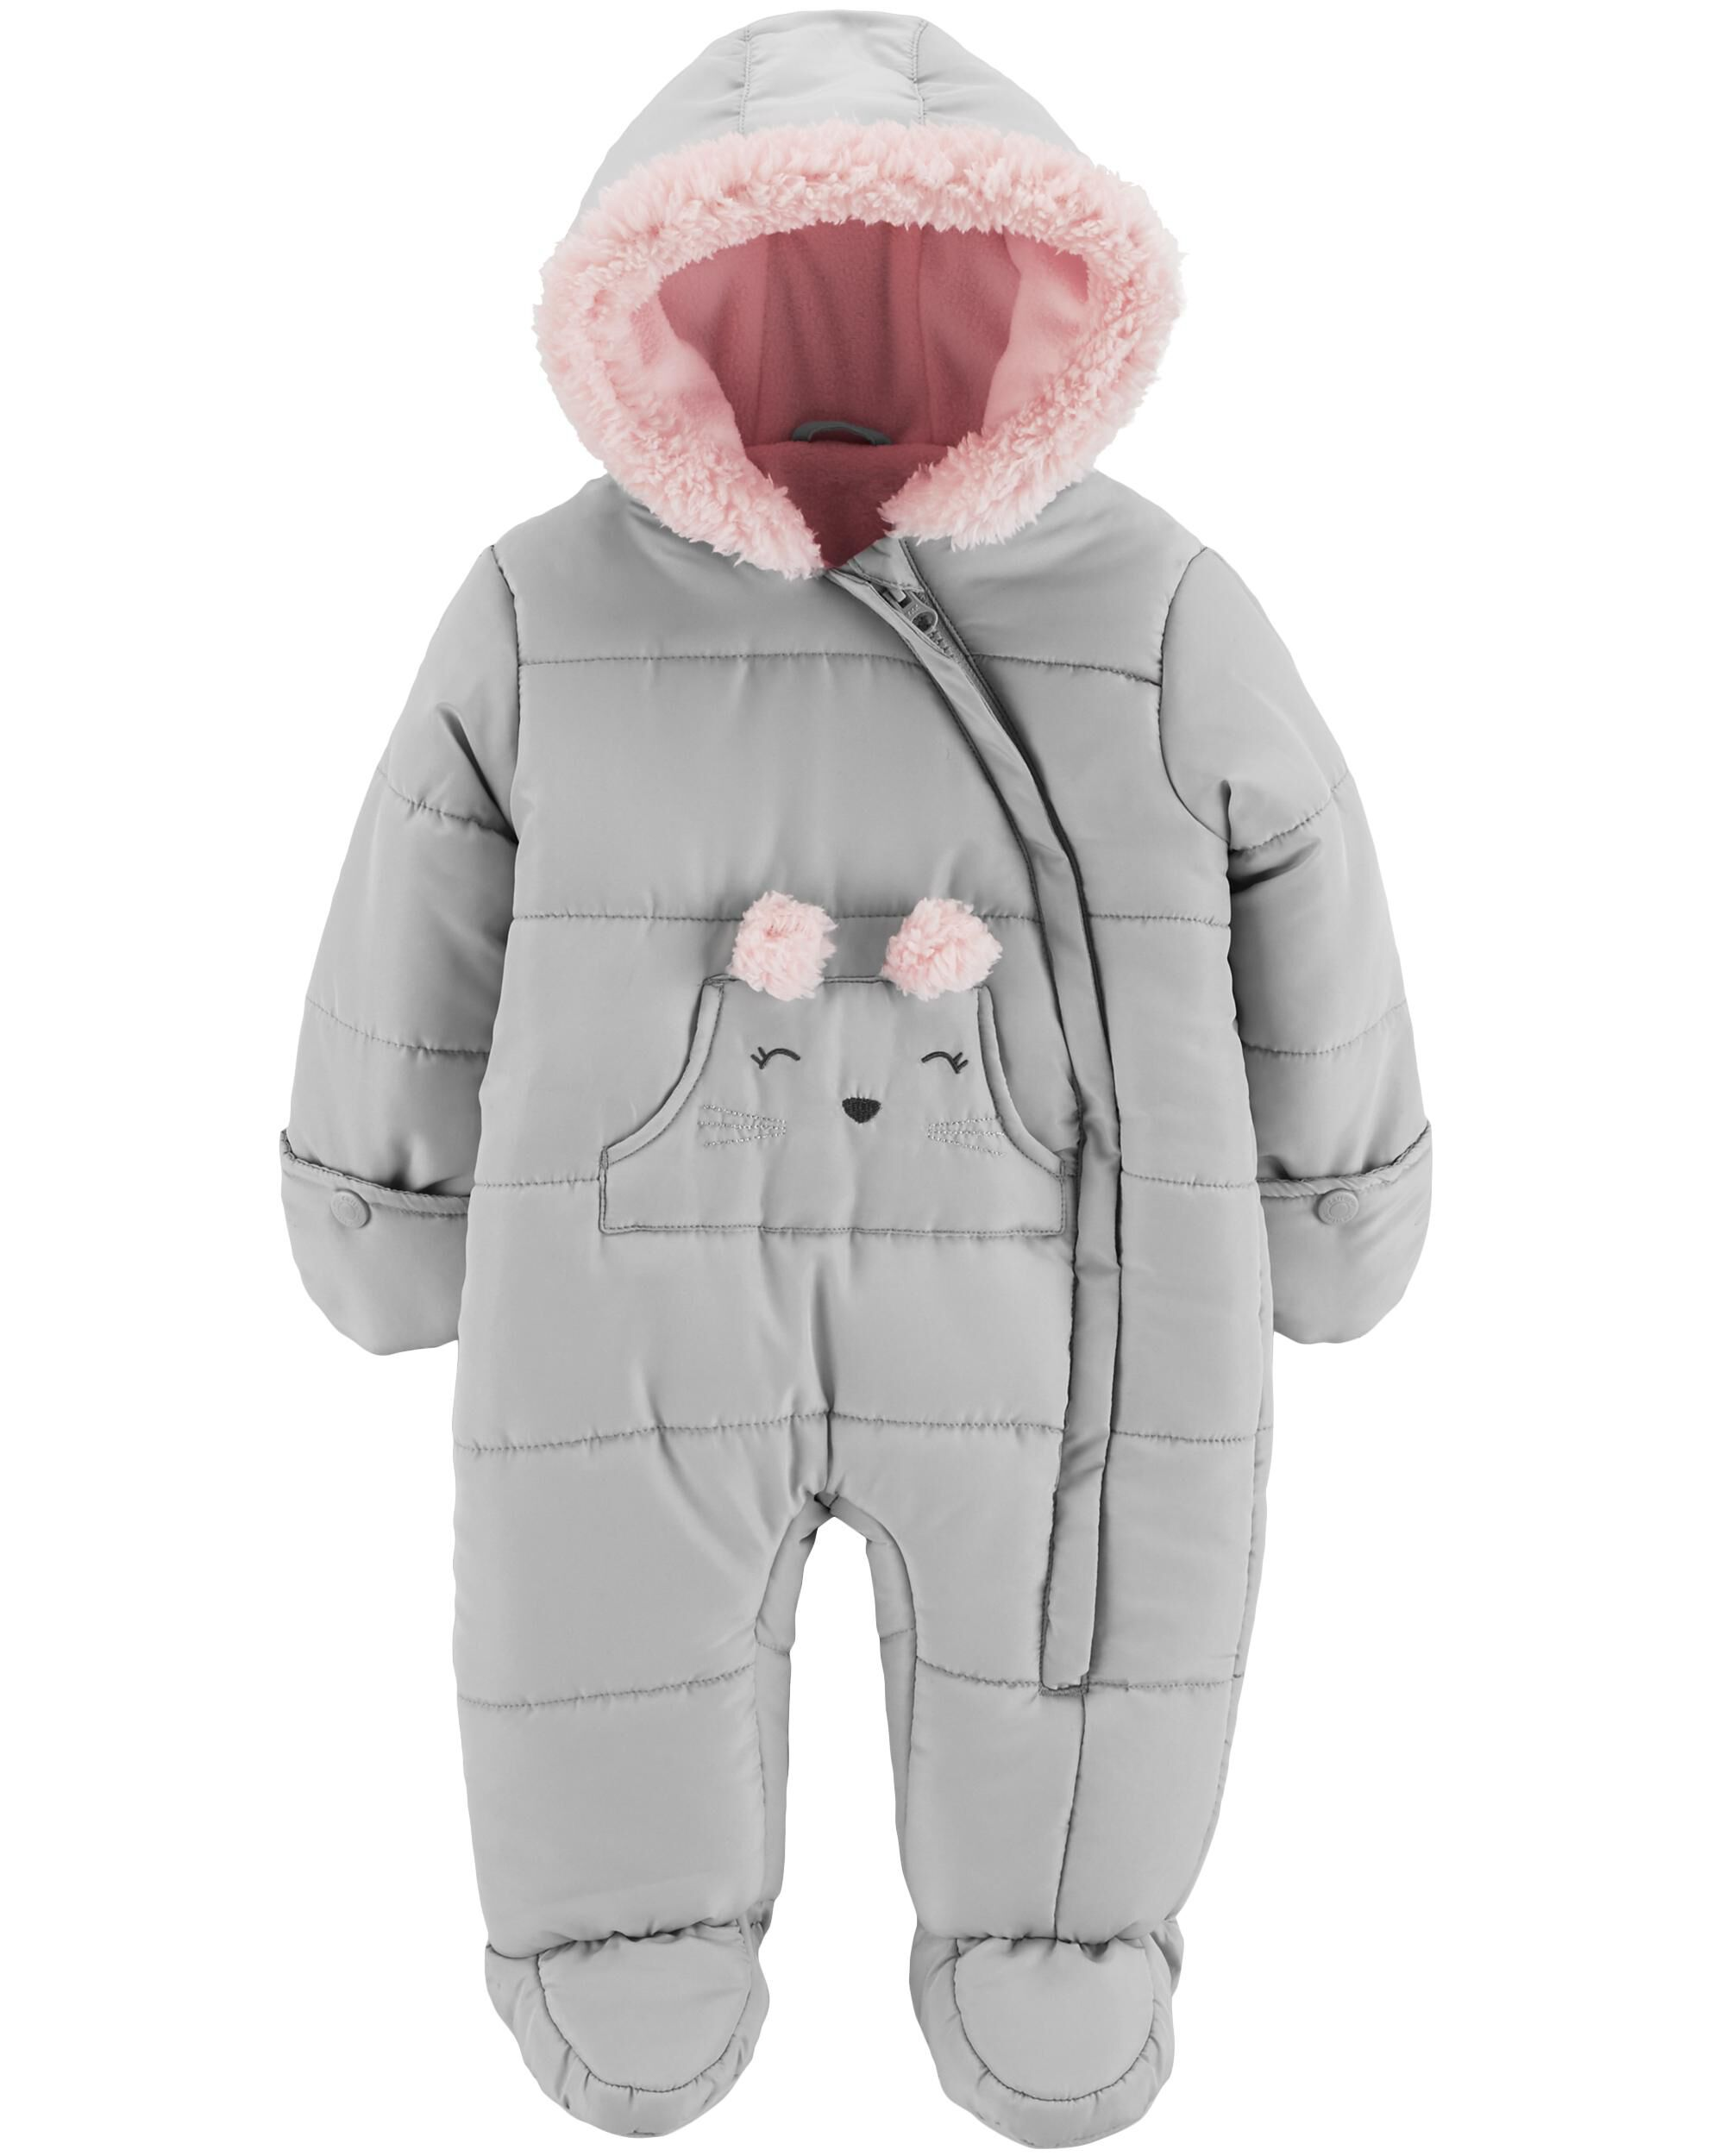 Girls' Clothing (newborn-5t) Baby & Toddler Clothing Reliable Age 3-6 Months Babies Snowsuit